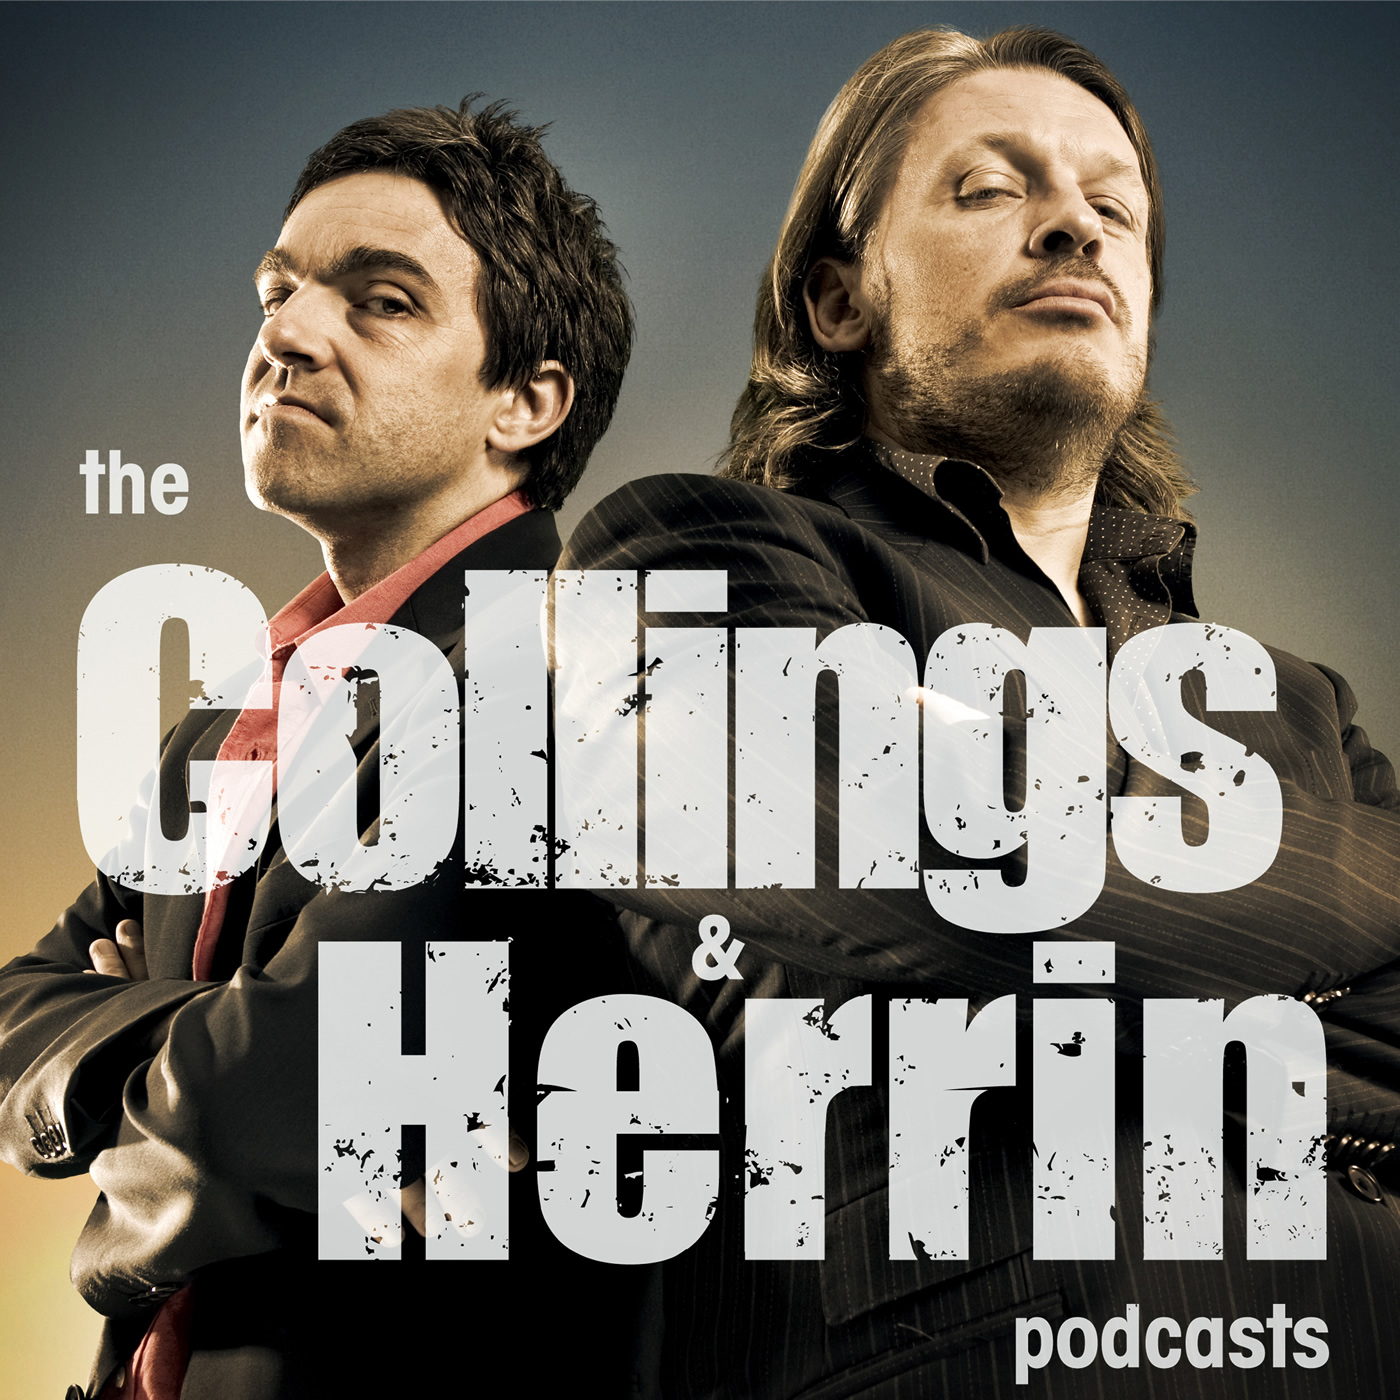 Andrew Collins and Richard Herring